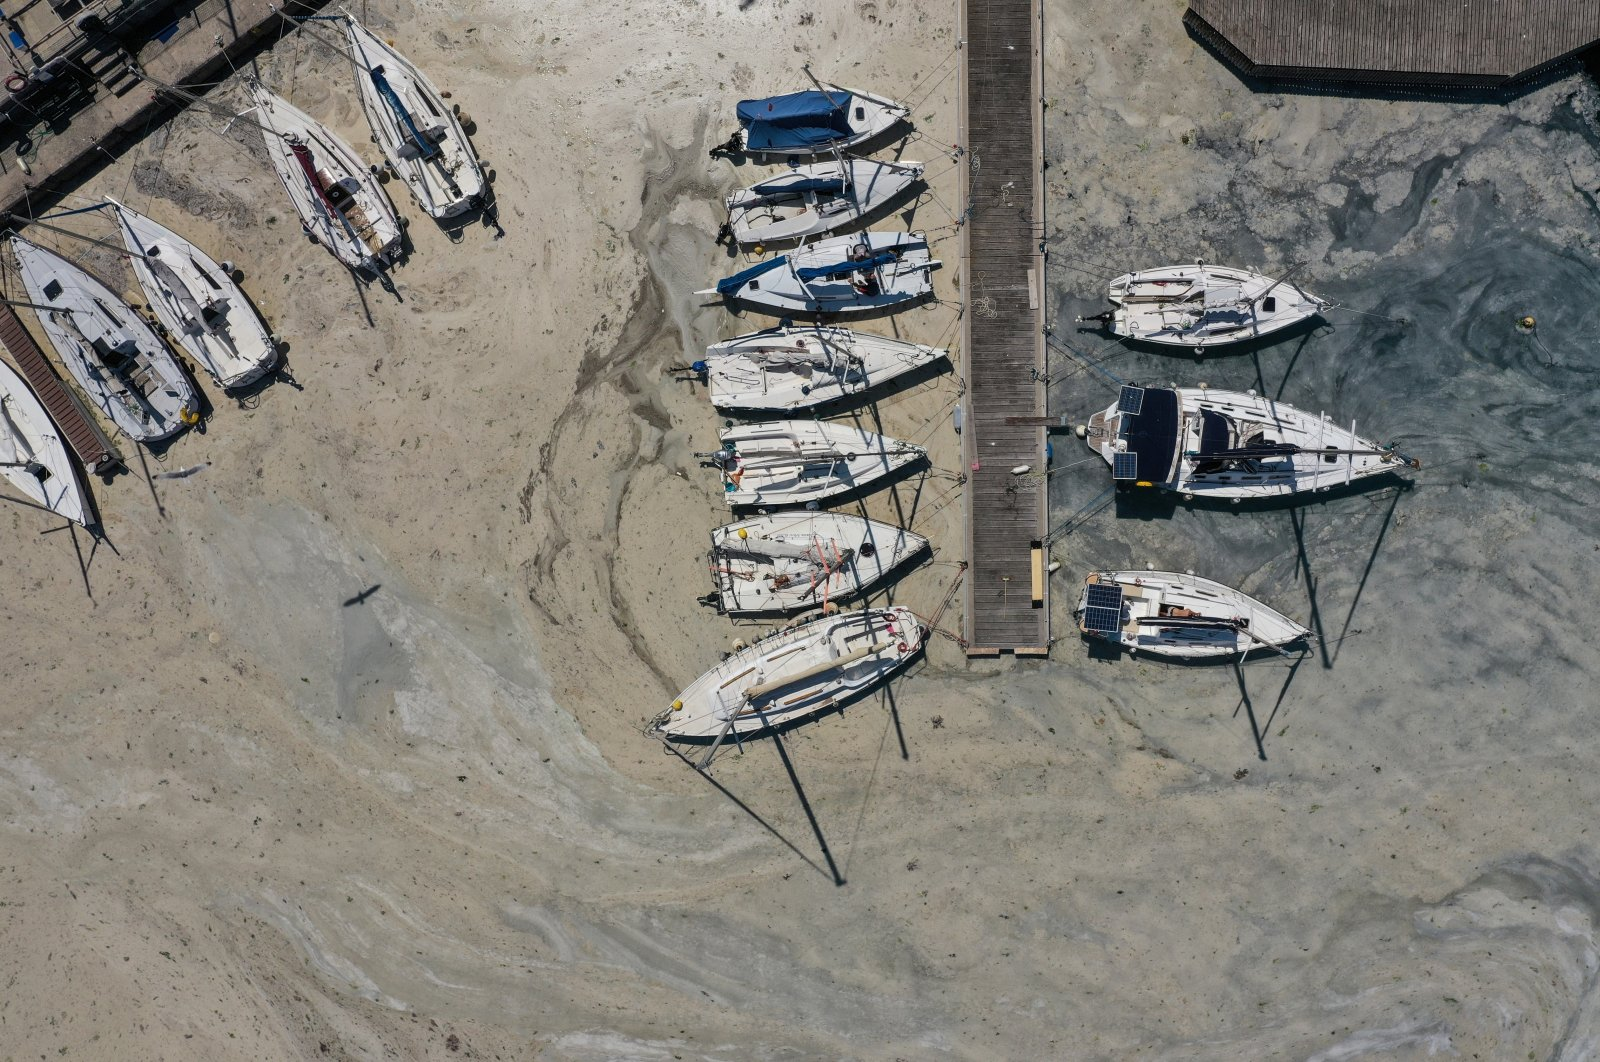 An aerial view of boats docked in a marina covered by sea snot, in Istanbul, Turkey, June 13, 2021. (REUTERS PHOTO)